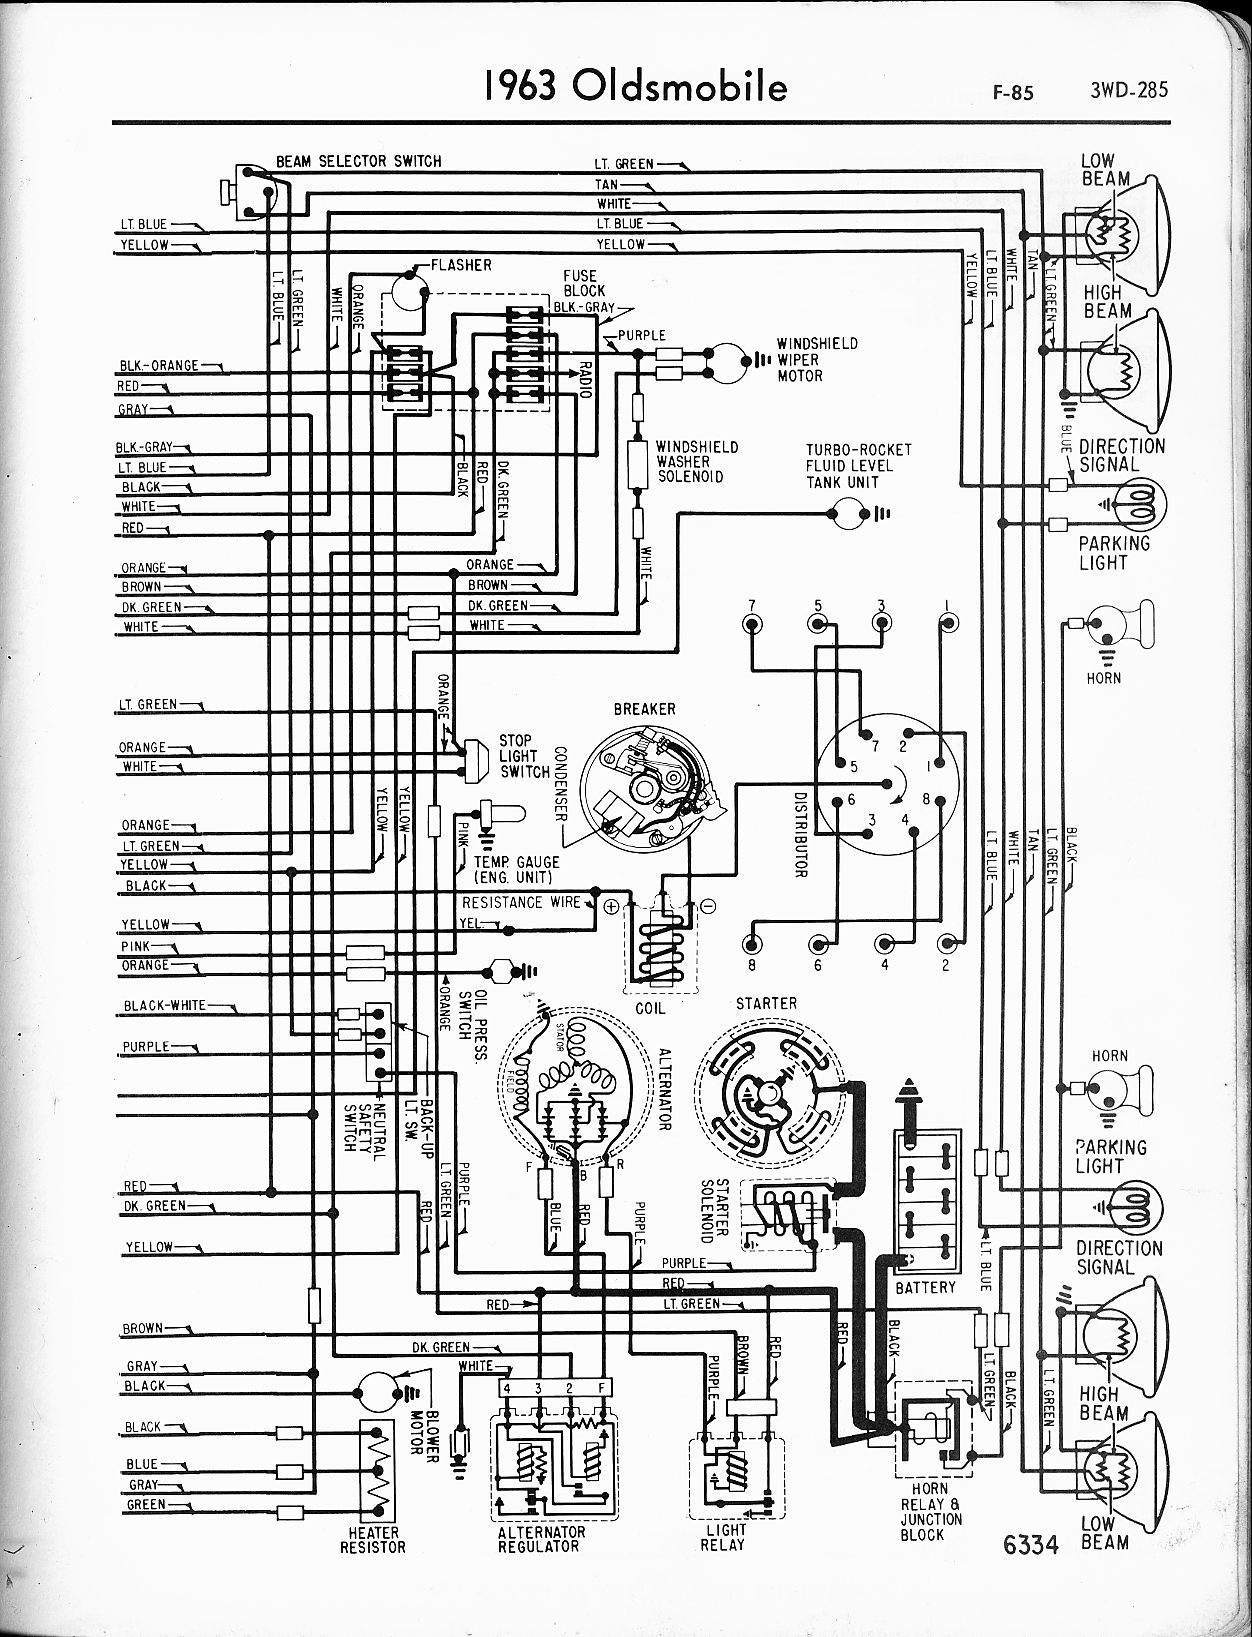 1995 Oldsmobile Silhouette Wiring Diagram Opinions About 99 Alero Blower Motor Diagrams The Old Car Manual Project Rh Oldcarmanualproject Com 1993 1969